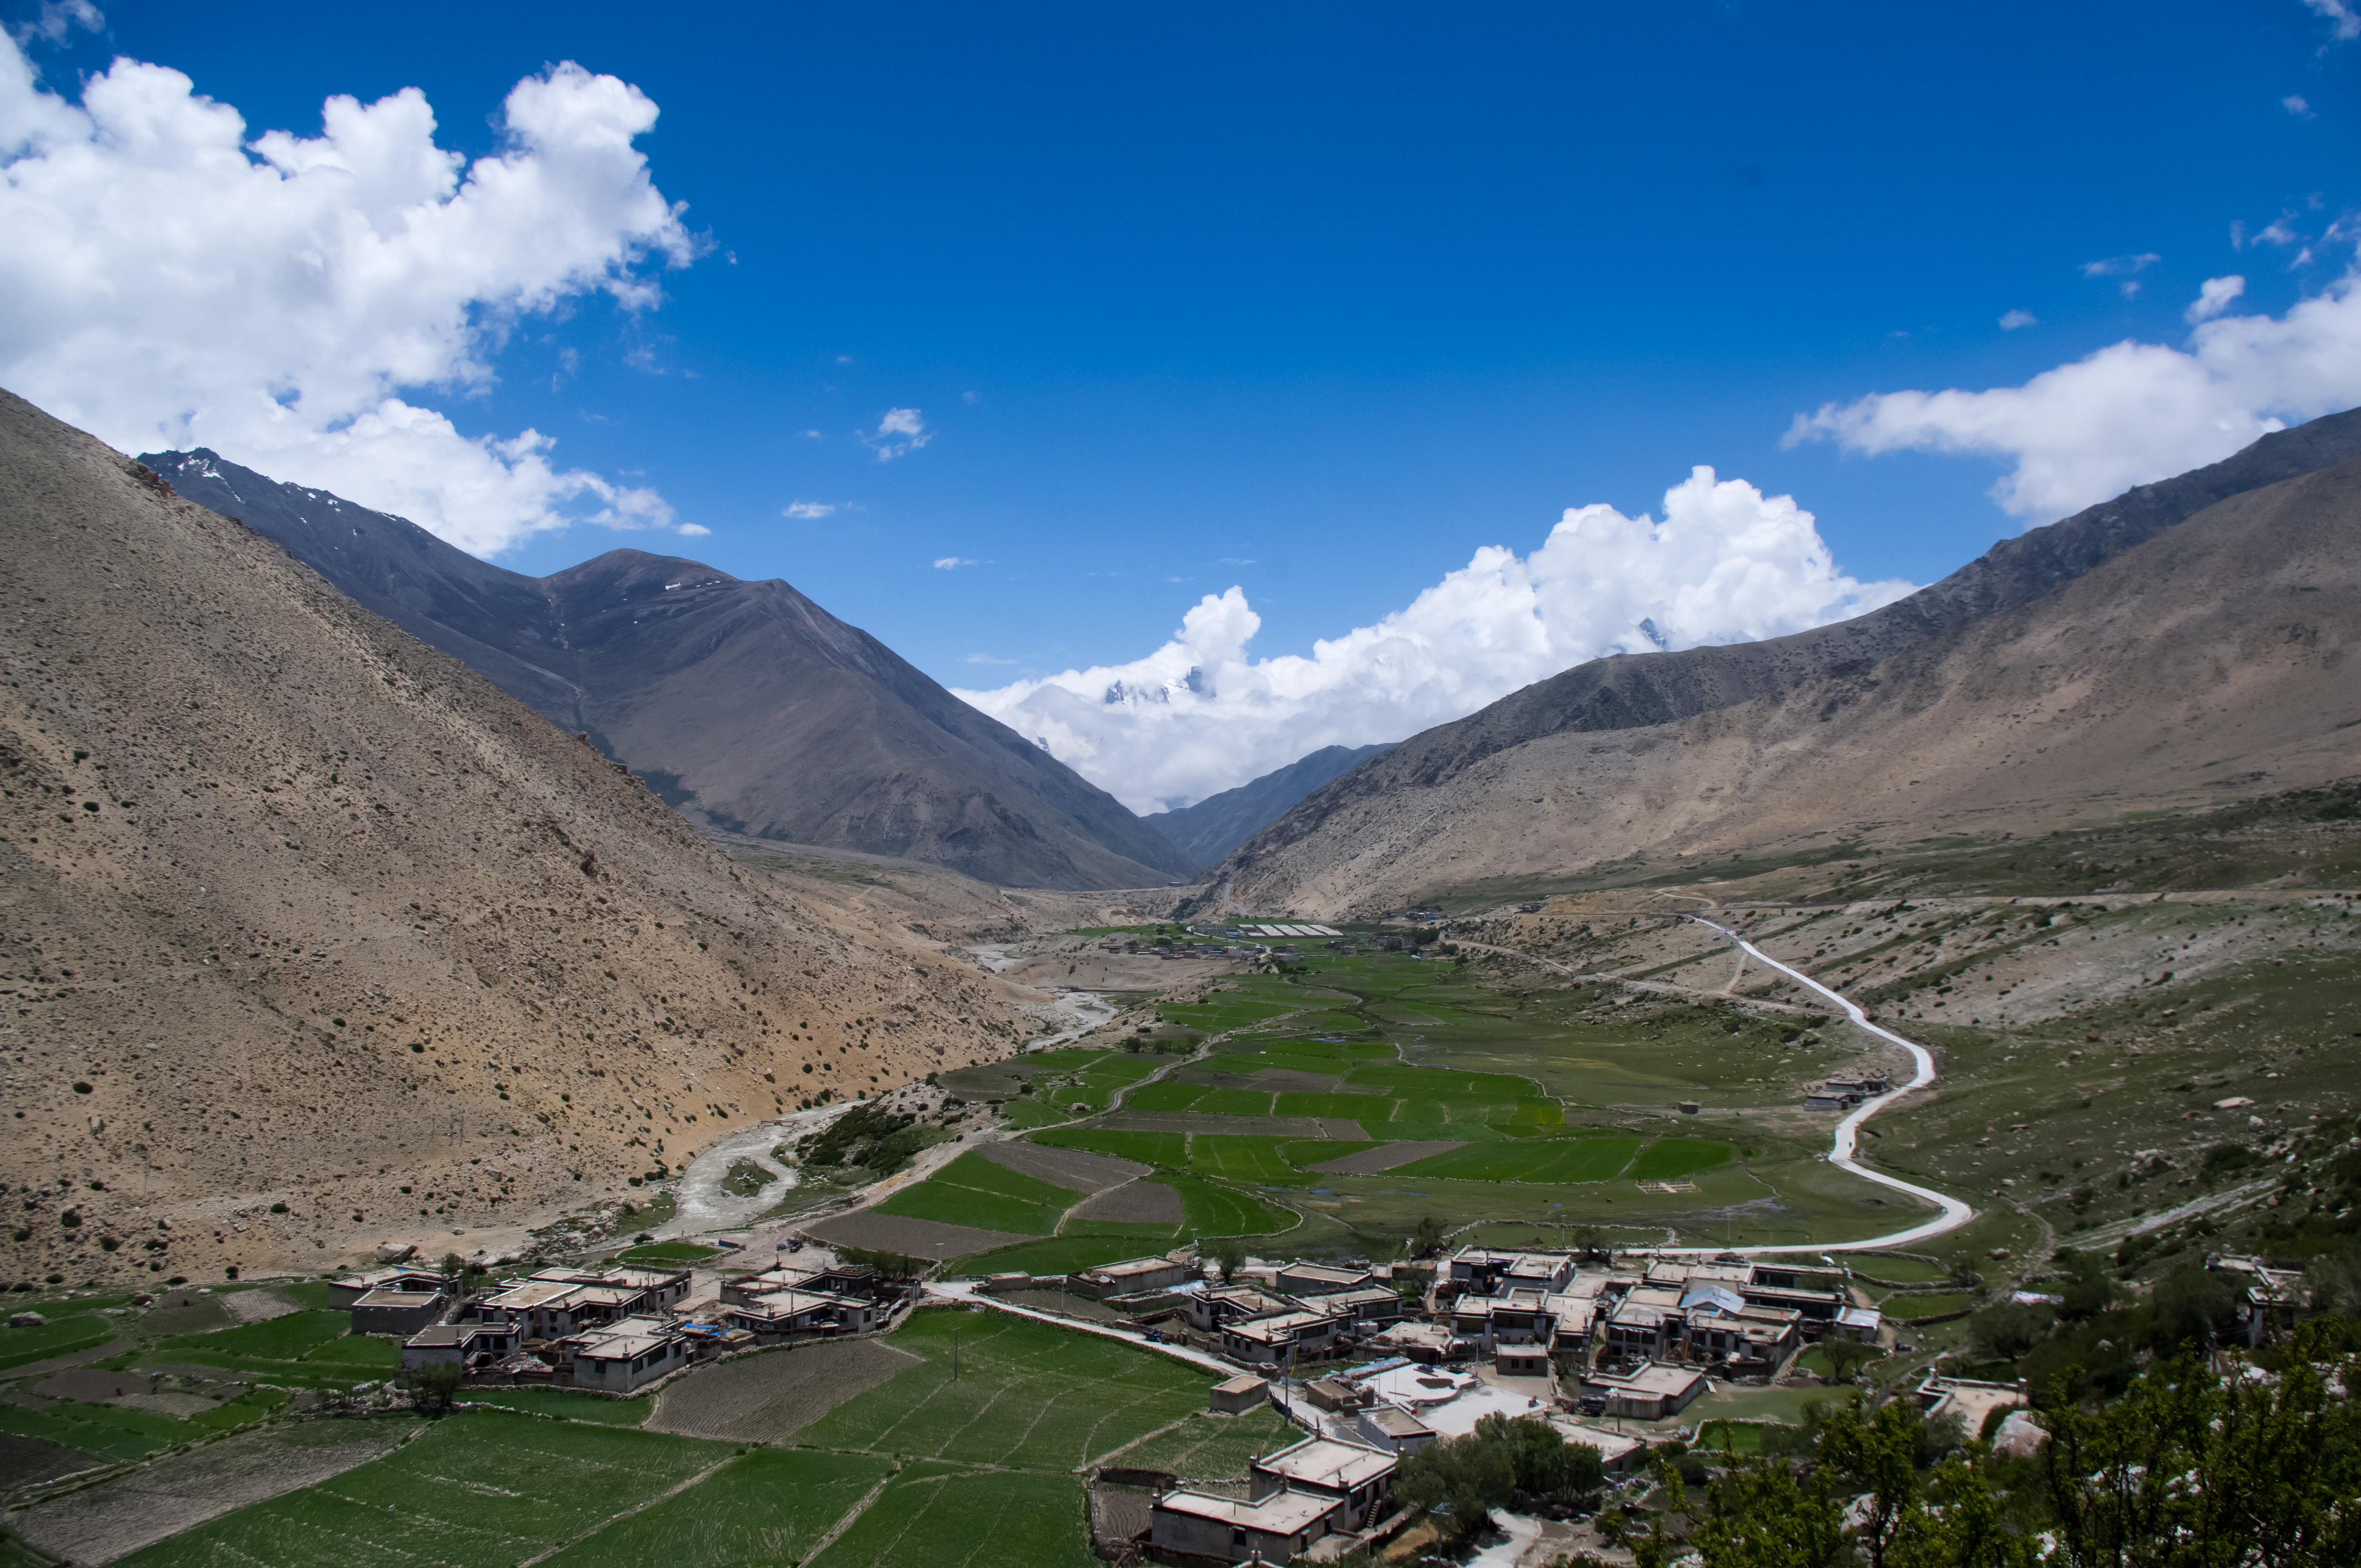 Tibetan_part_of_the_Koshi_basin_Santosh_Nepal